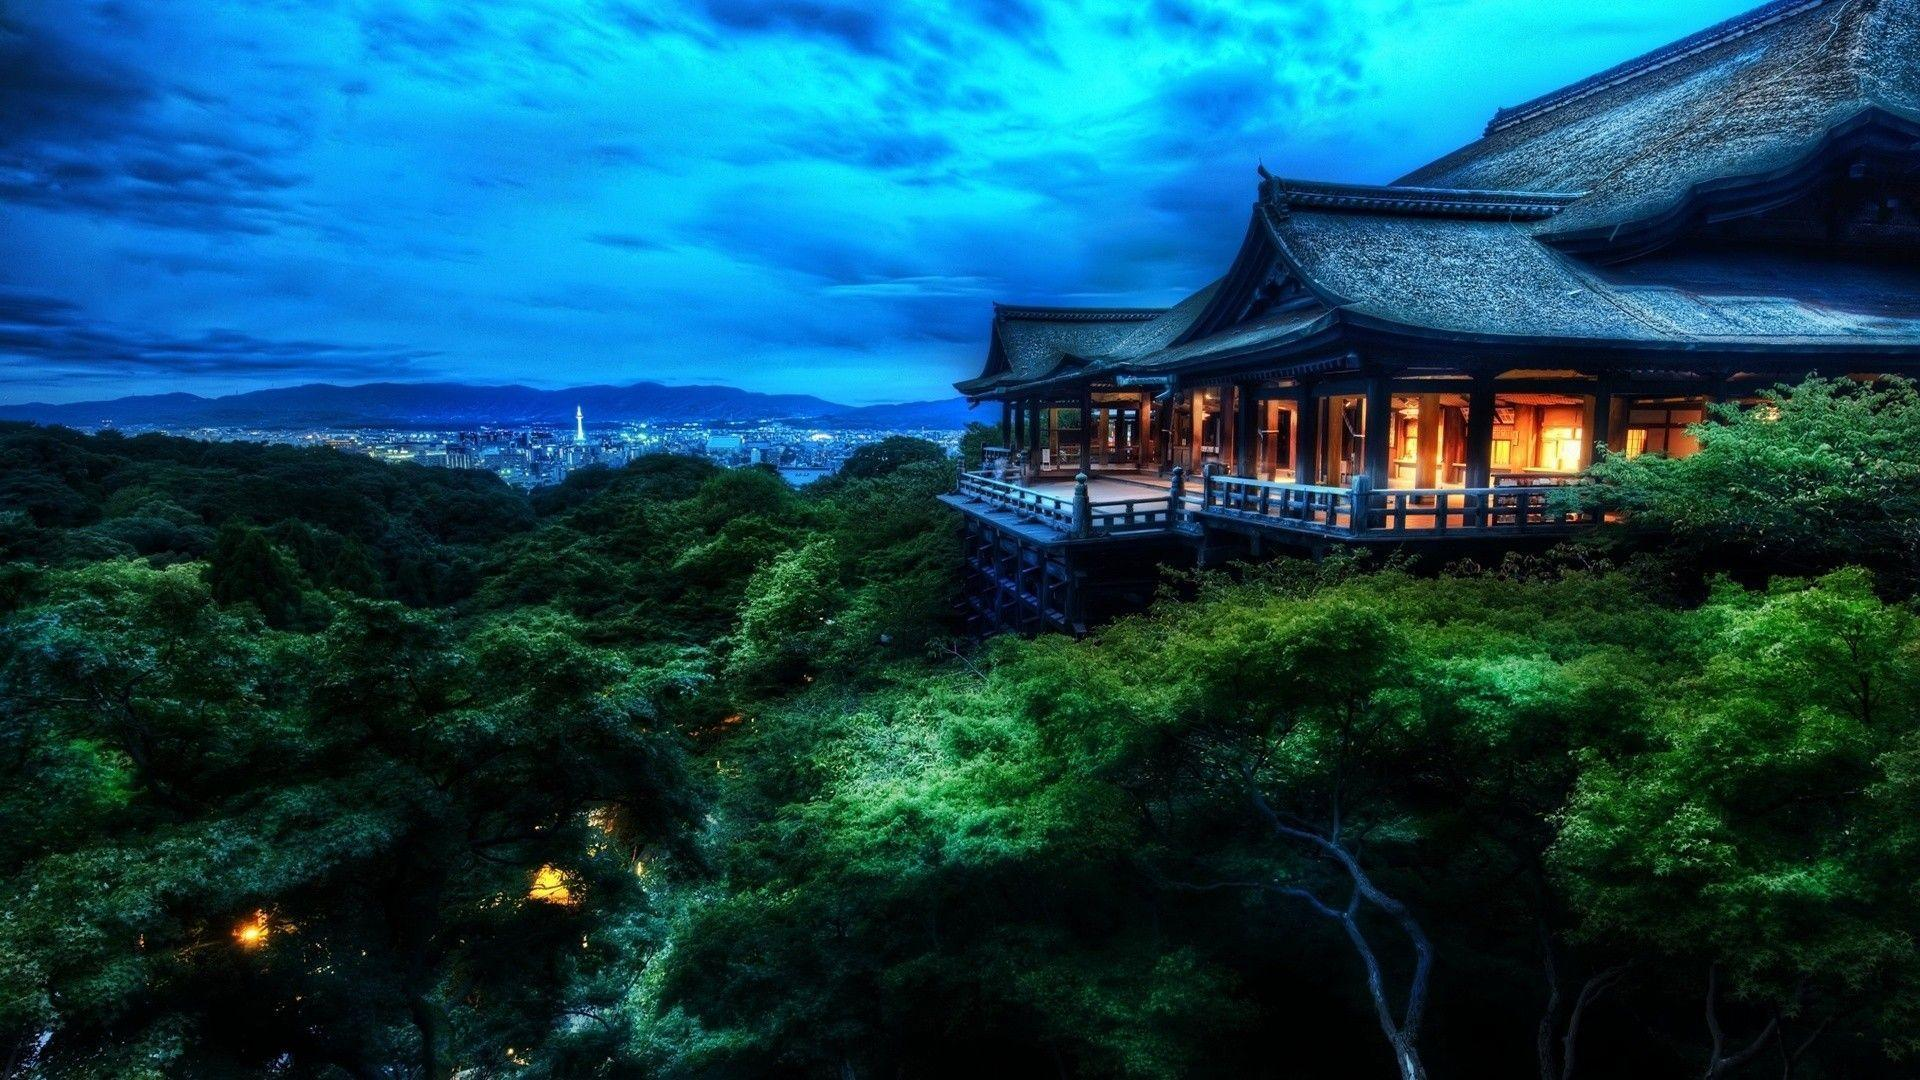 Japanese Landscape Wallpapers 1920x1080